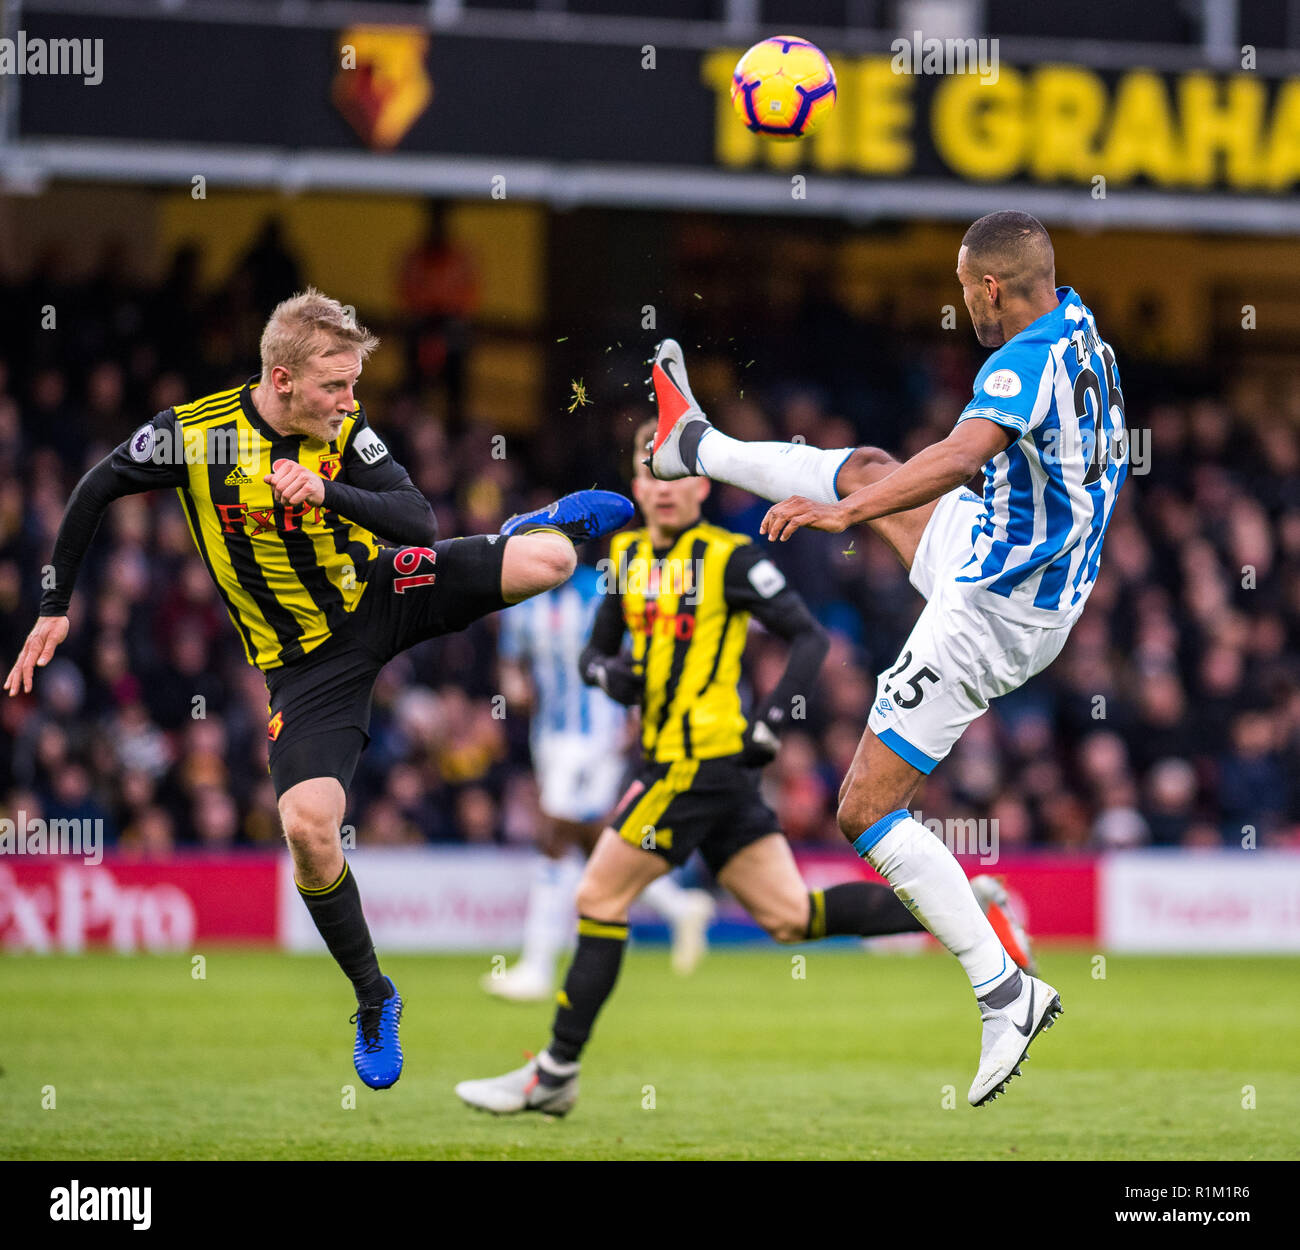 WATFORD, ENGLAND - OCTOBER 27: Will Hughes of Watford FC and Mathias Jørgensen of Huddersfield Town during the Premier League match between Watford FC and Huddersfield Town at Vicarage Road on October 27, 2018 in Watford, United Kingdom. (MB Media) - Stock Image